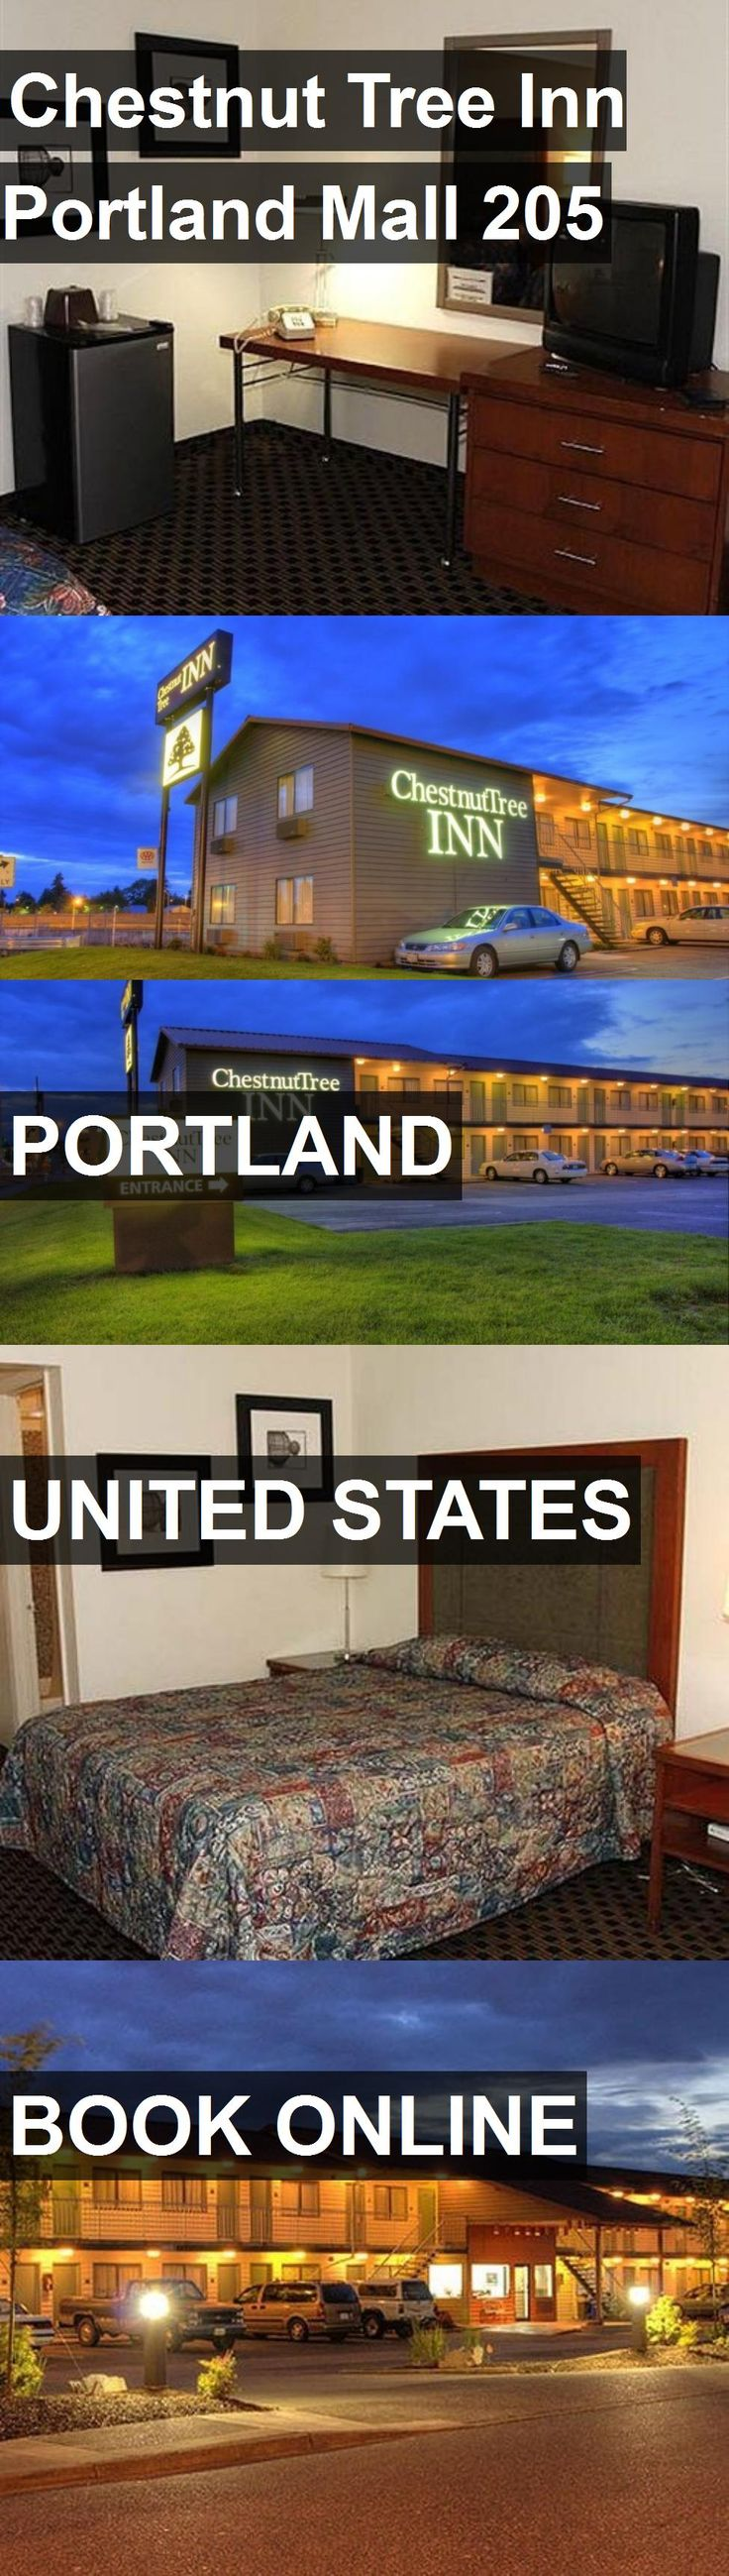 Hotel Chestnut Tree Inn Portland Mall 205 in Portland, United States. For more information, photos, reviews and best prices please follow the link. #UnitedStates #Portland #travel #vacation #hotel